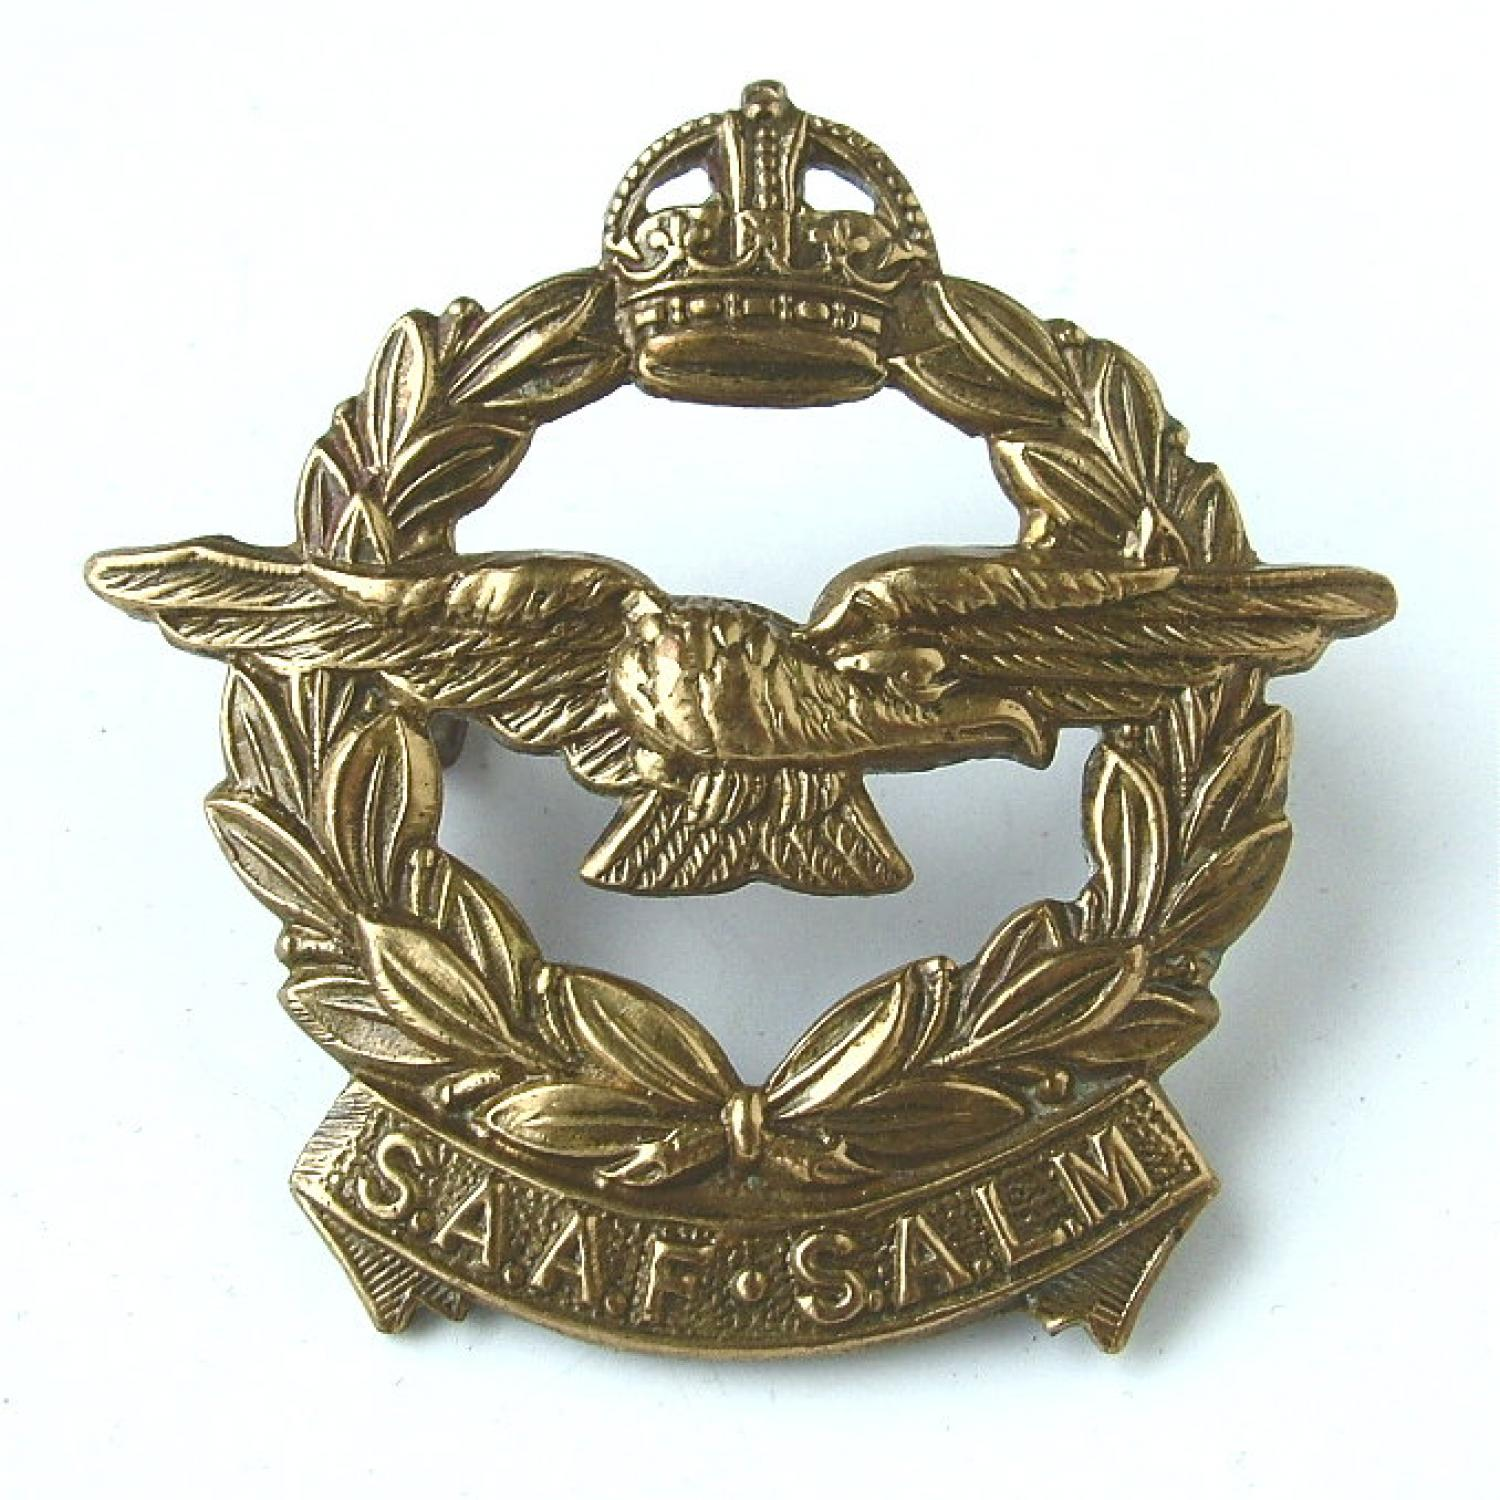 SAAF Other ranks cap badge